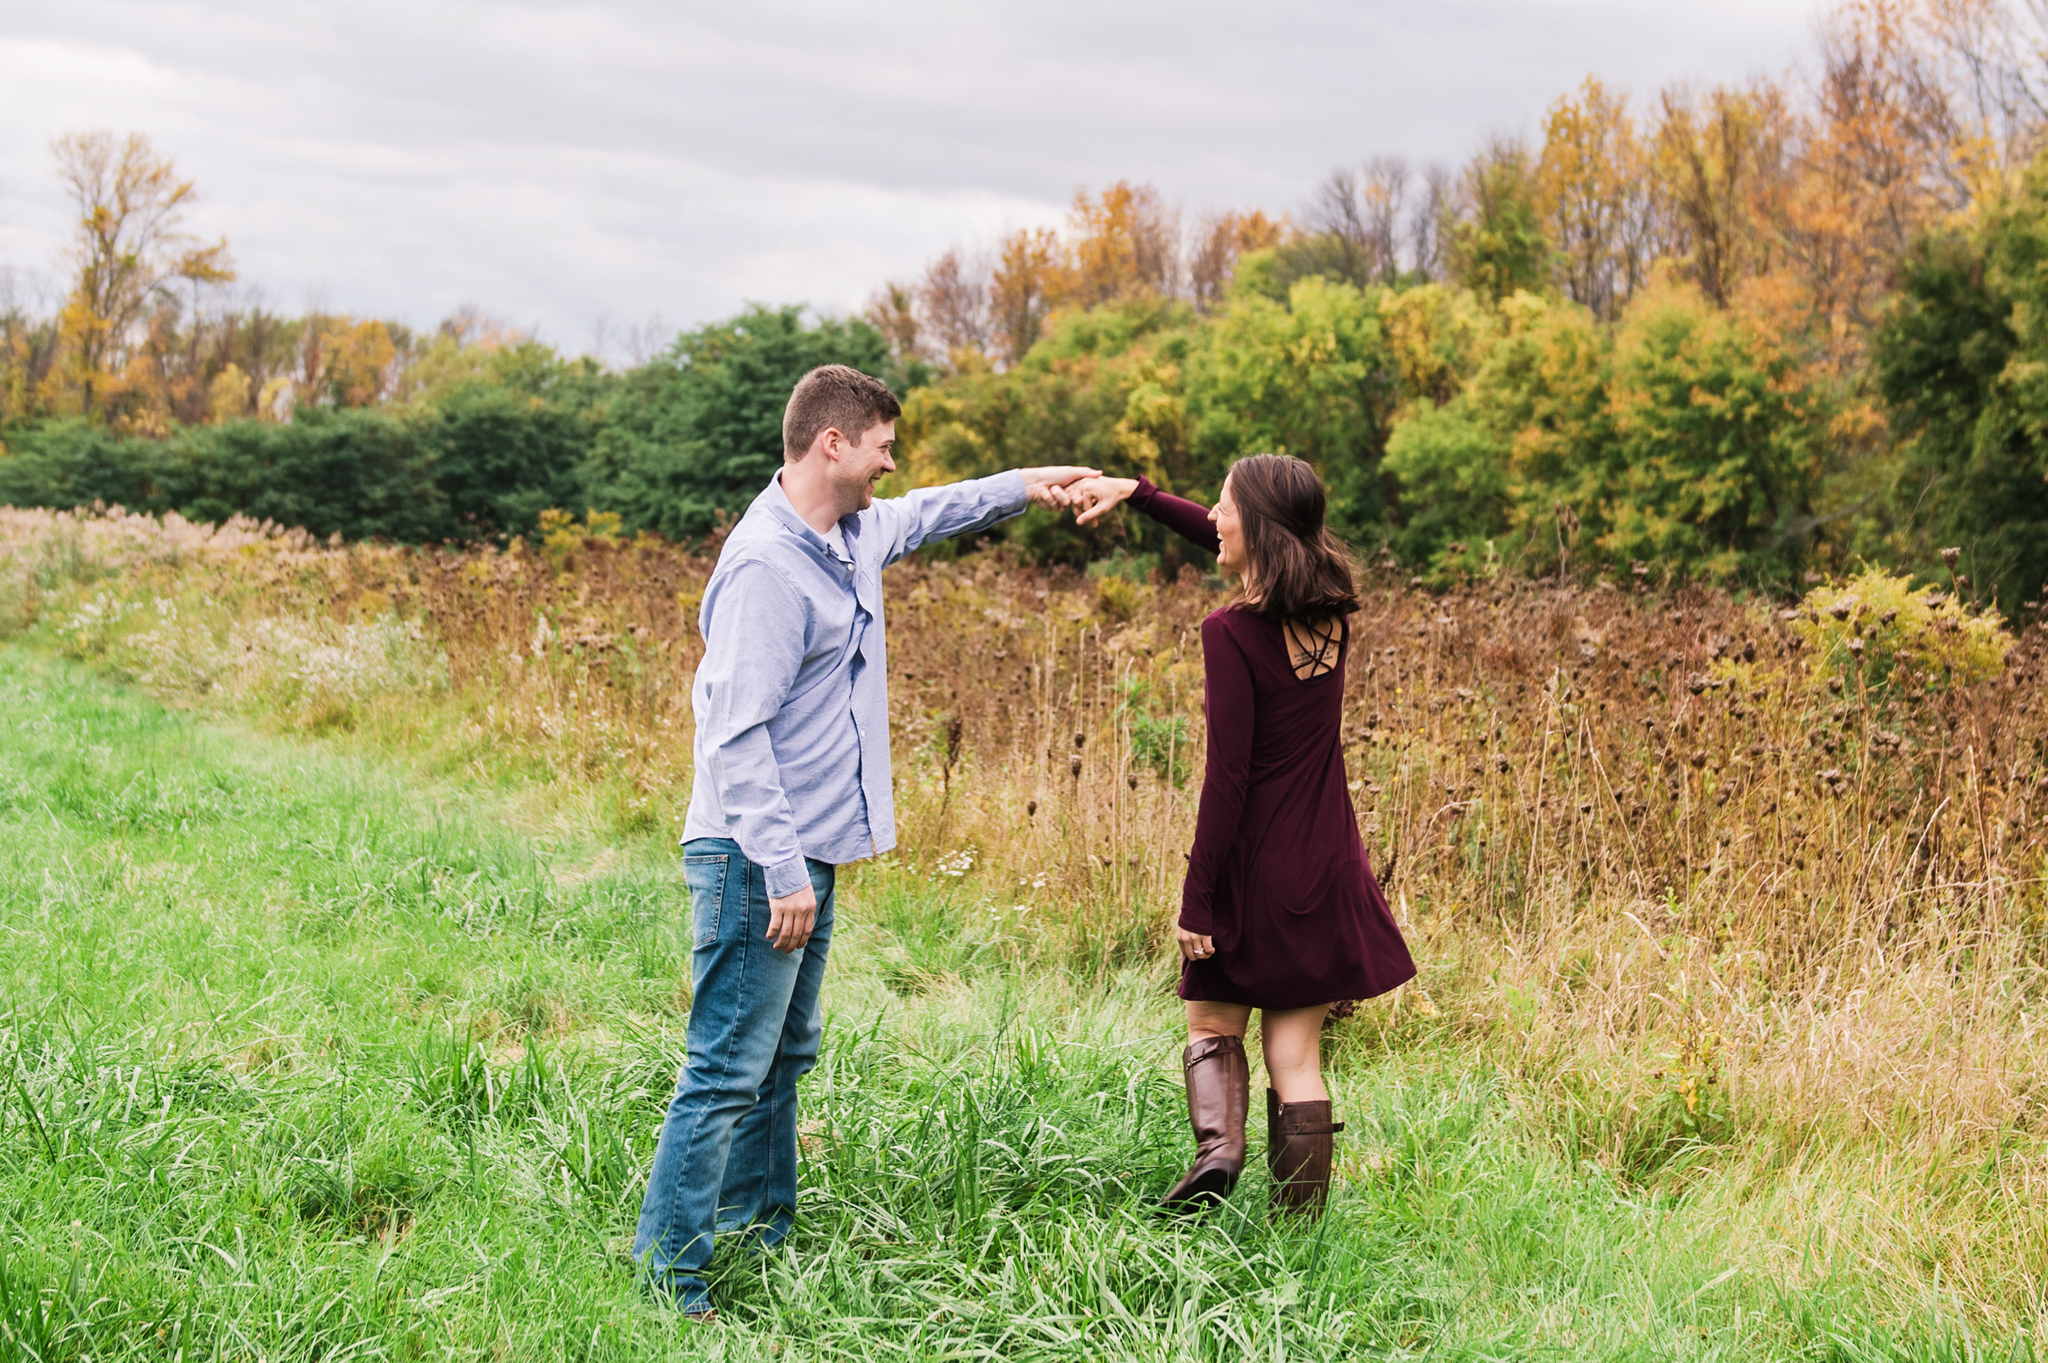 Hurd_Orchards_Rochester_Engagement_Session_JILL_STUDIO_Rochester_NY_Photographer_DSC_2080.jpg